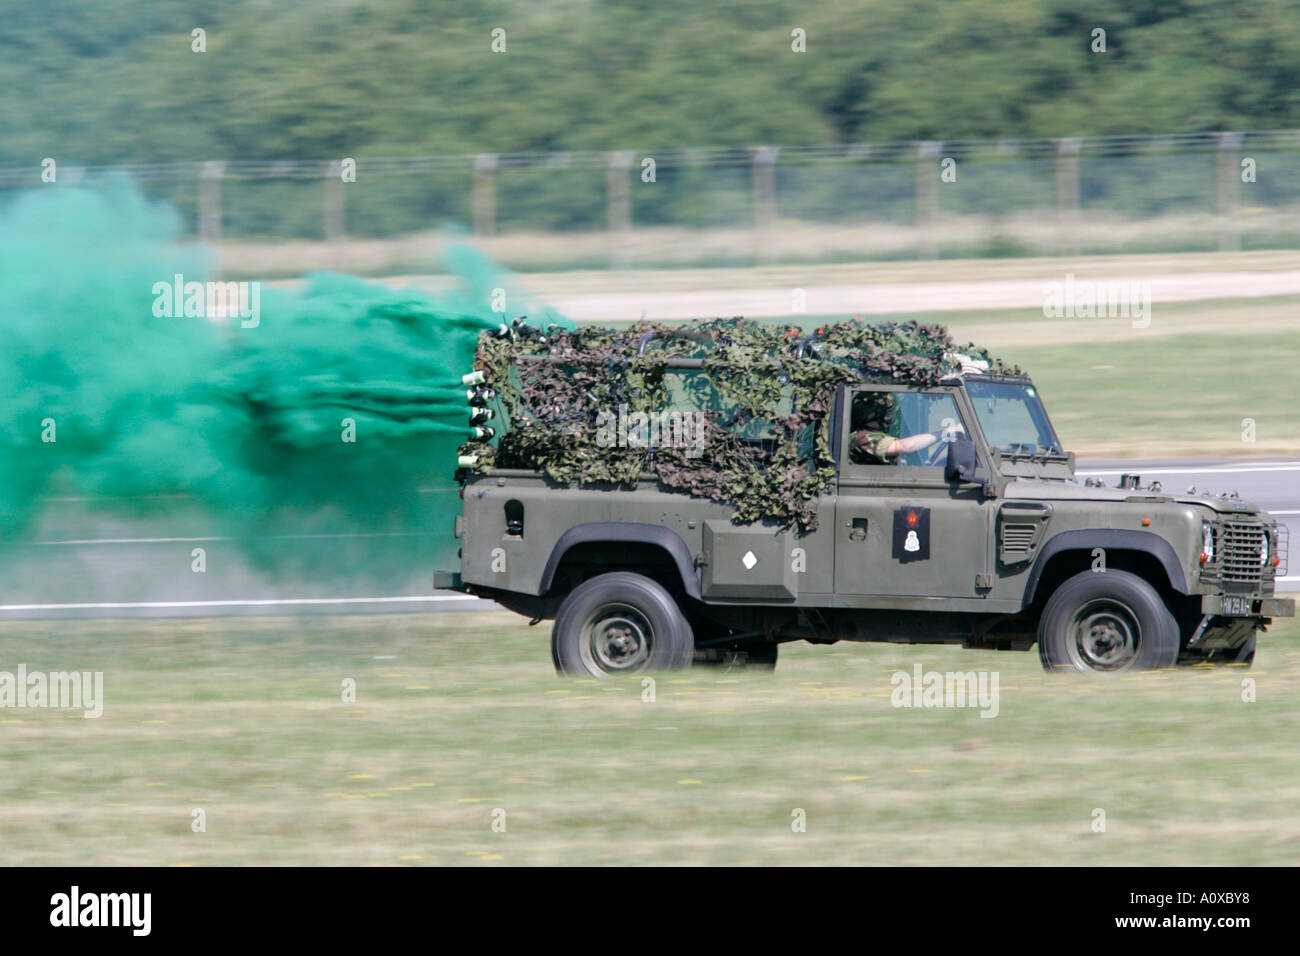 British Army landrover speeds off trailing green smoke as part of military TAC demo demonstration RIAT 2005 RAF Fairford - Stock Image